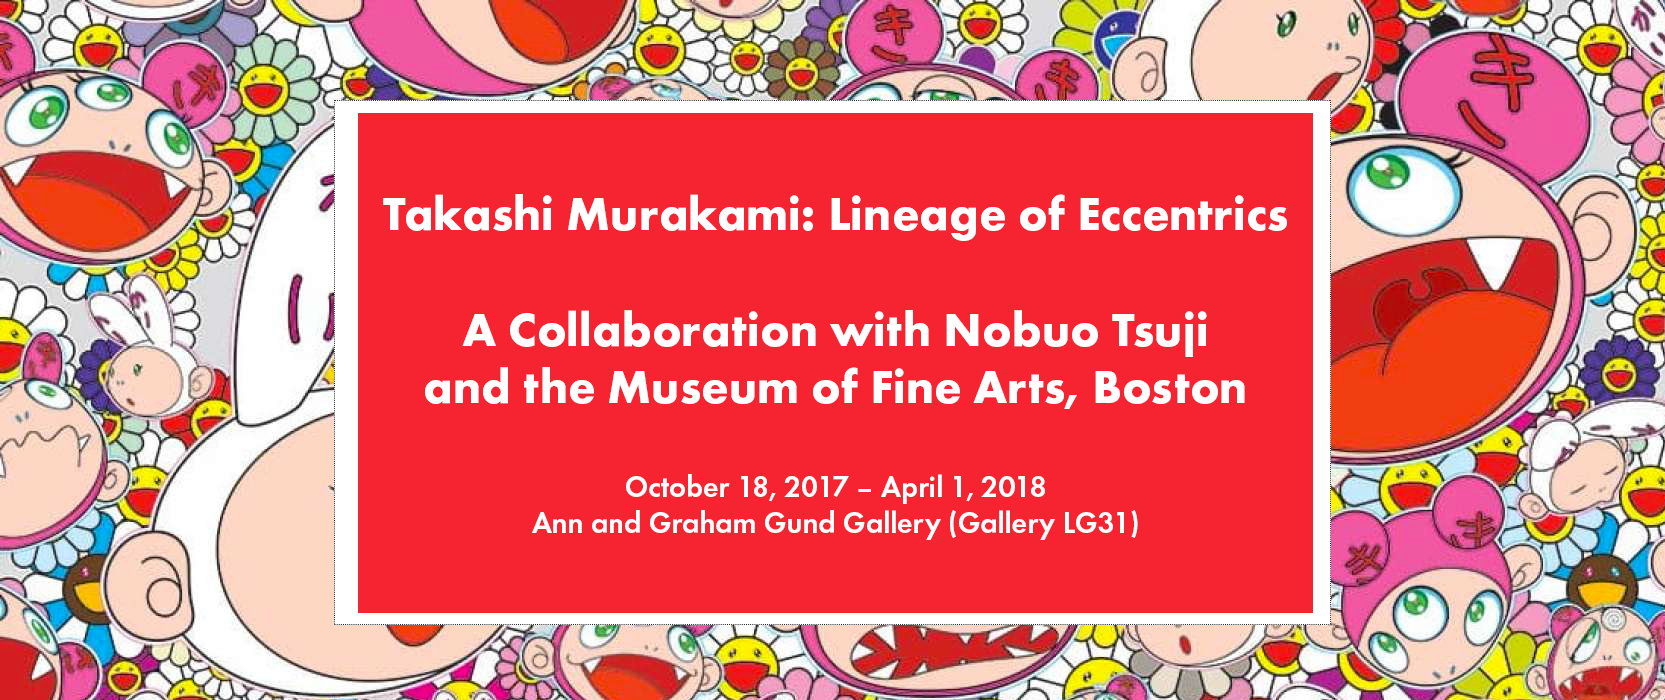 MFA EXHIBIT OF TAKASHI MURAKAM